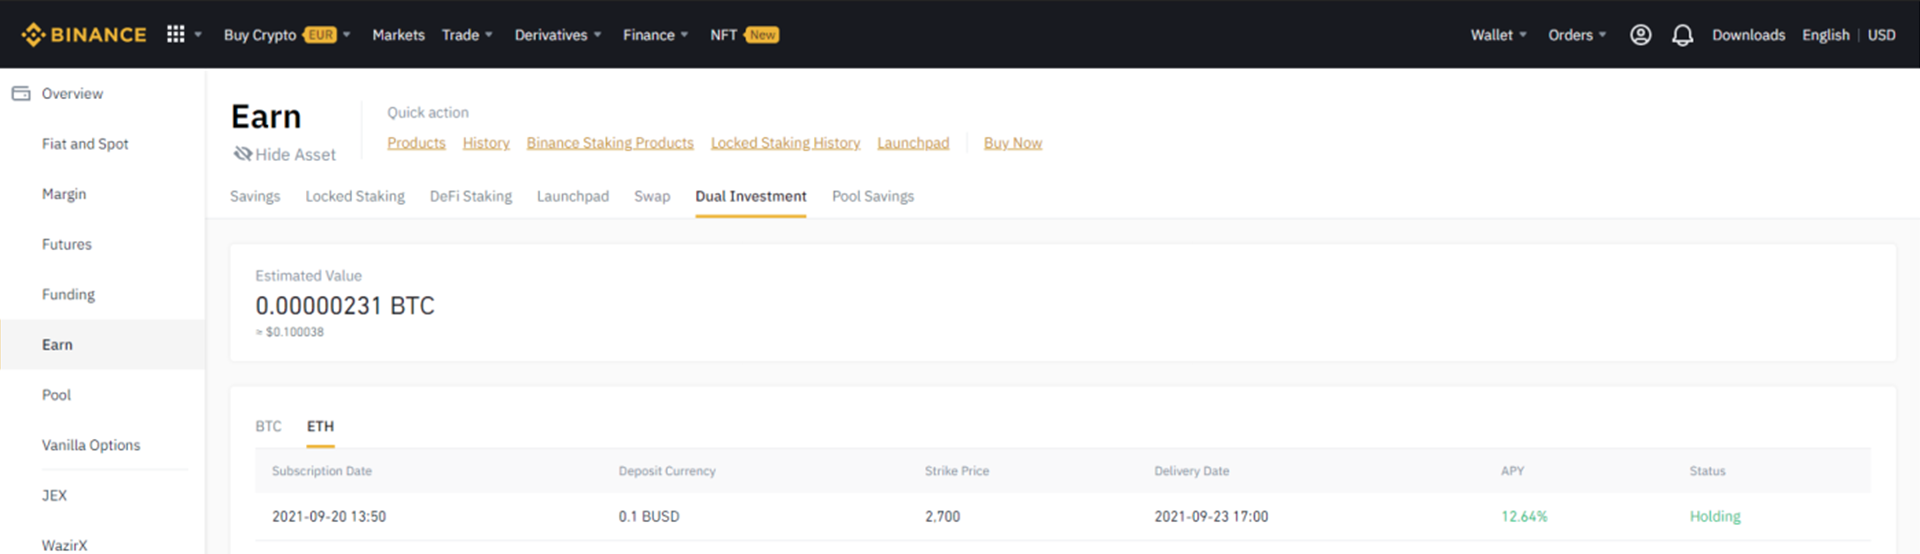 A screenshot of the Binance Dual Investment overview screen with an open position.